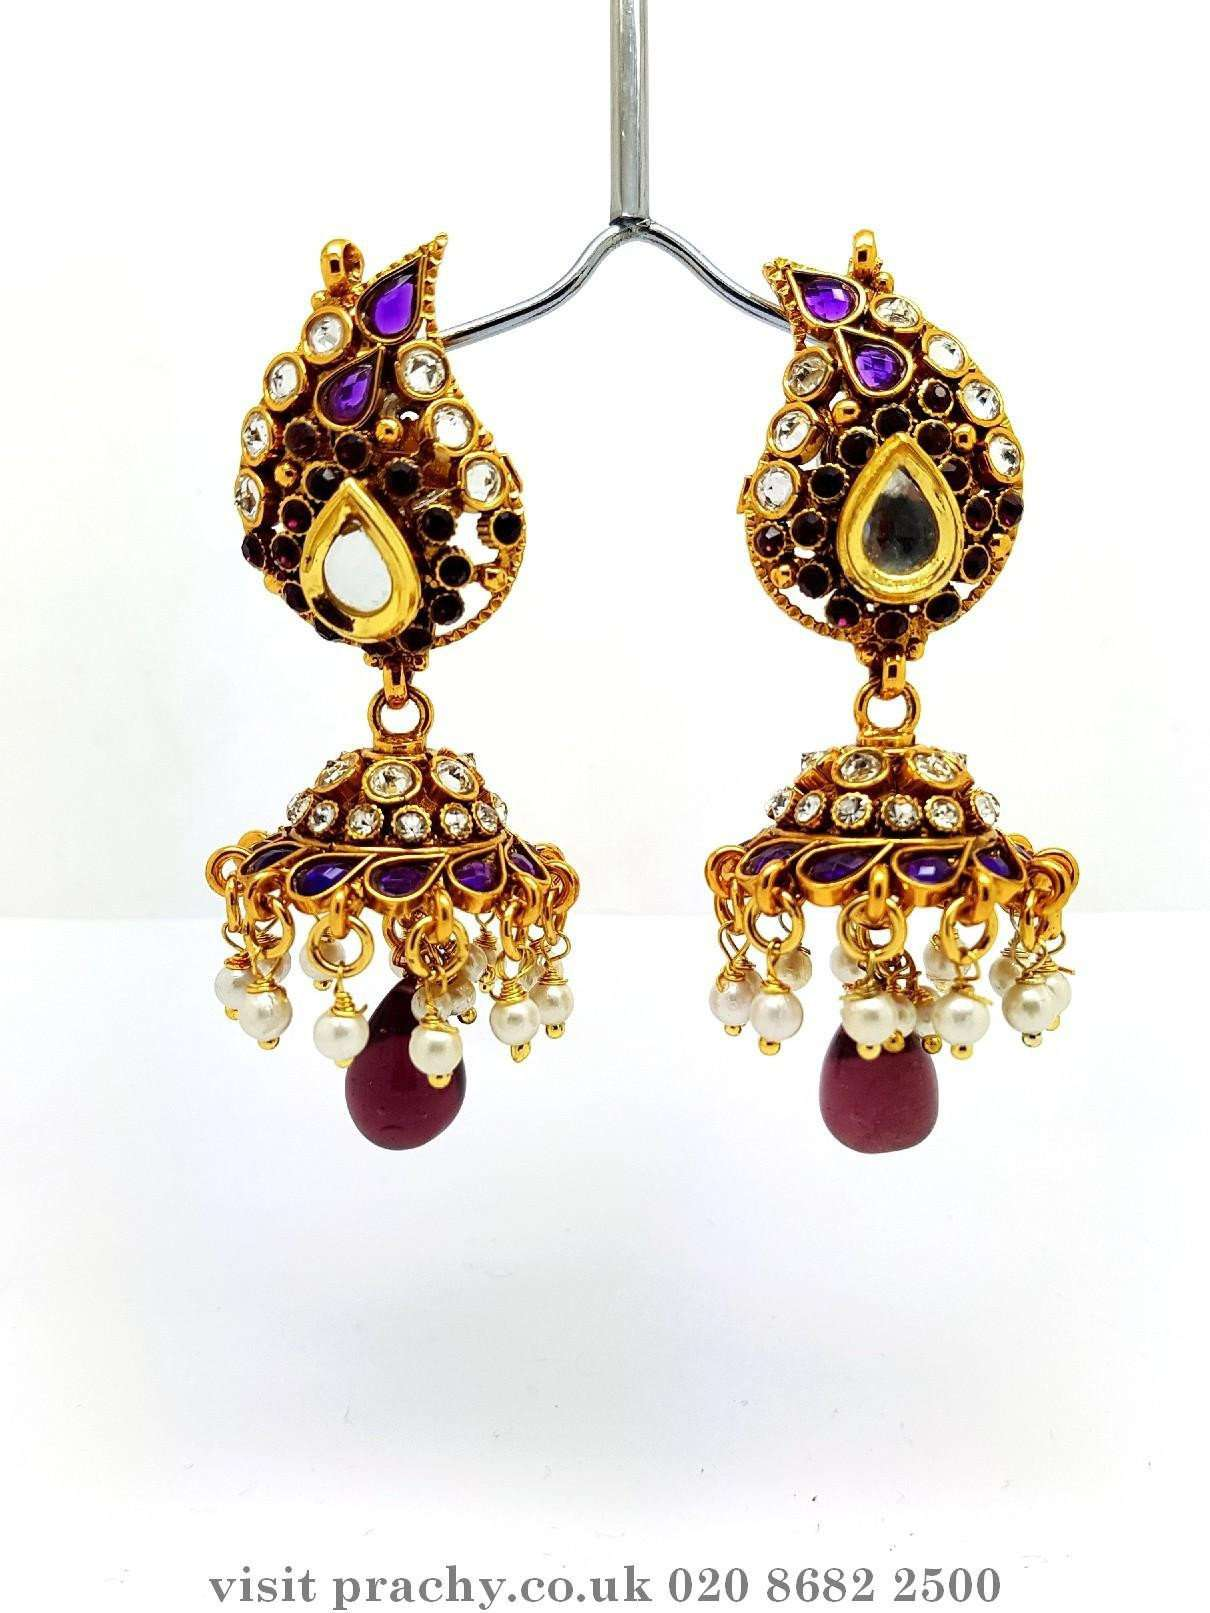 DJ 22241 - p.p 0716 - Earrings - Prachy Creations